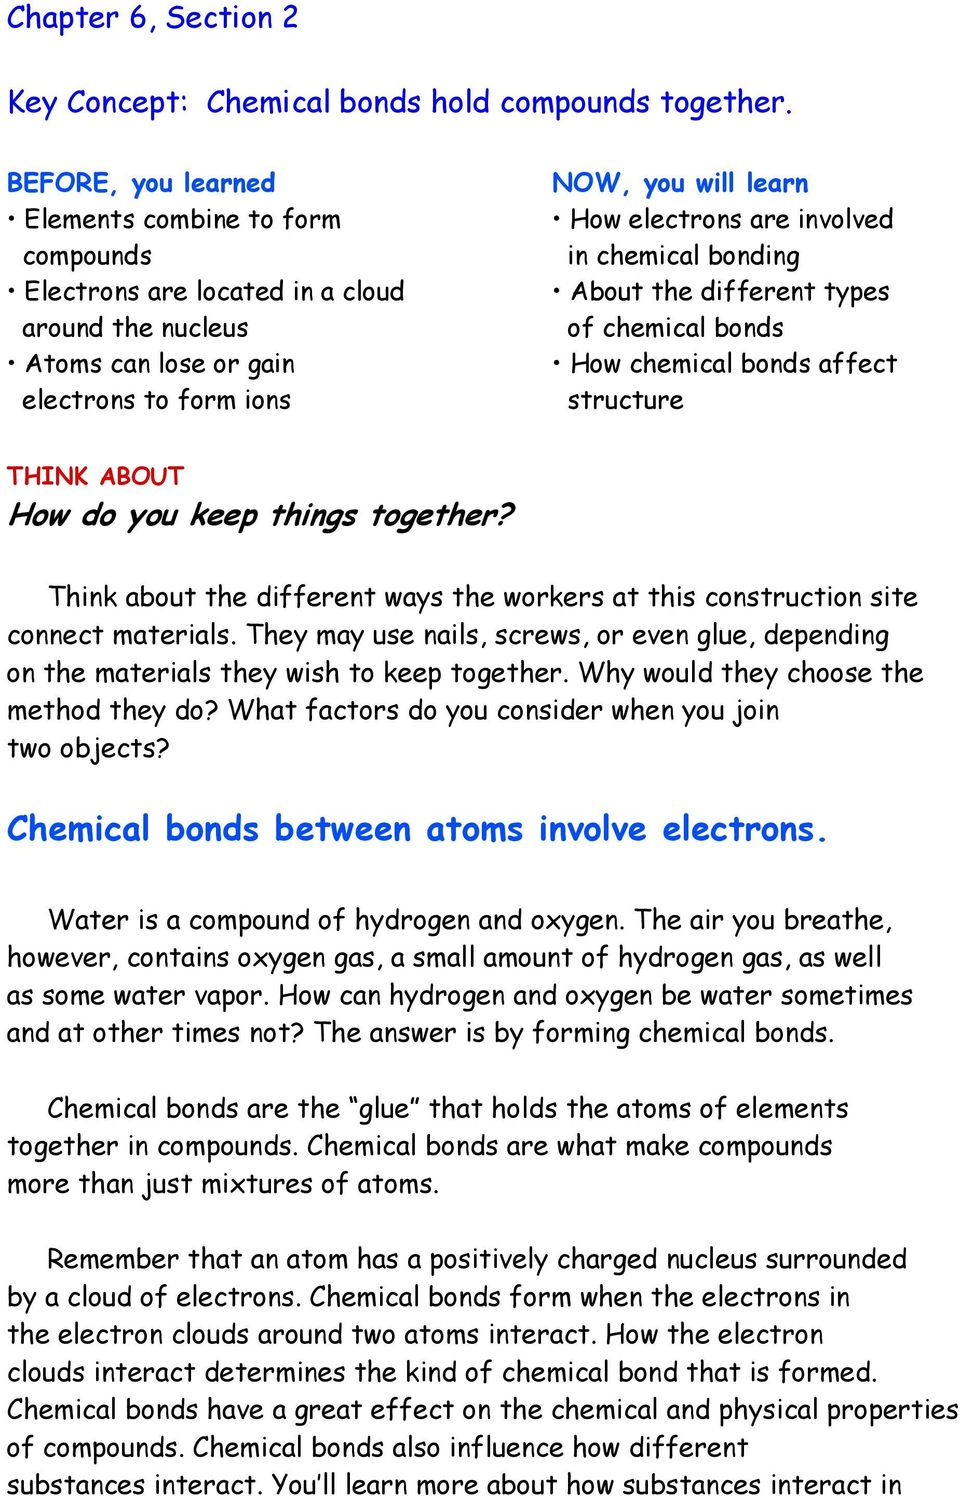 in chemical bonding About the different types of chemical bonds How chemical bonds affect structure THINK ABOUT How do you keep things together?